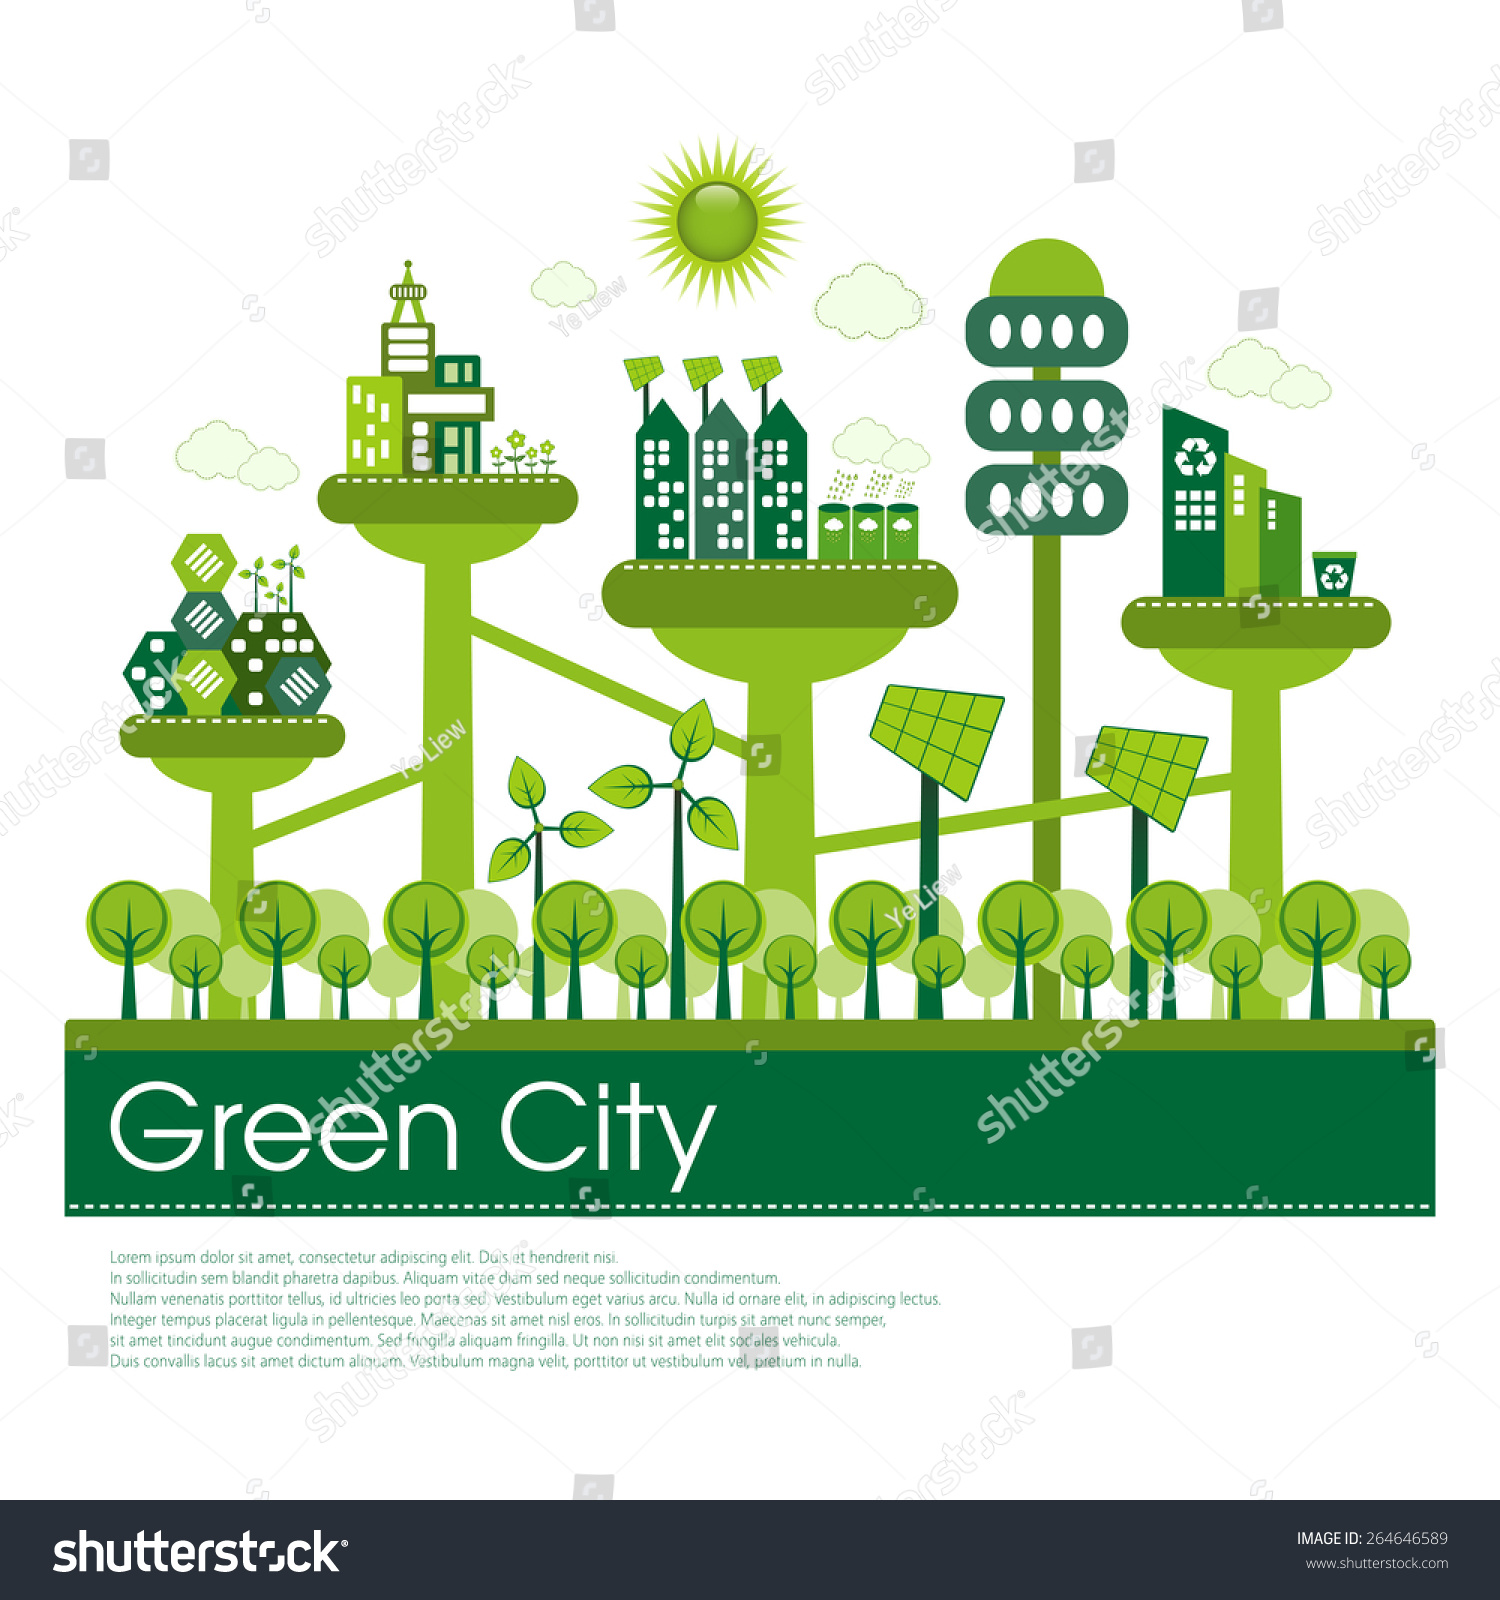 futuristic green eco city living concept stock vector 264646589 shutterstock. Black Bedroom Furniture Sets. Home Design Ideas